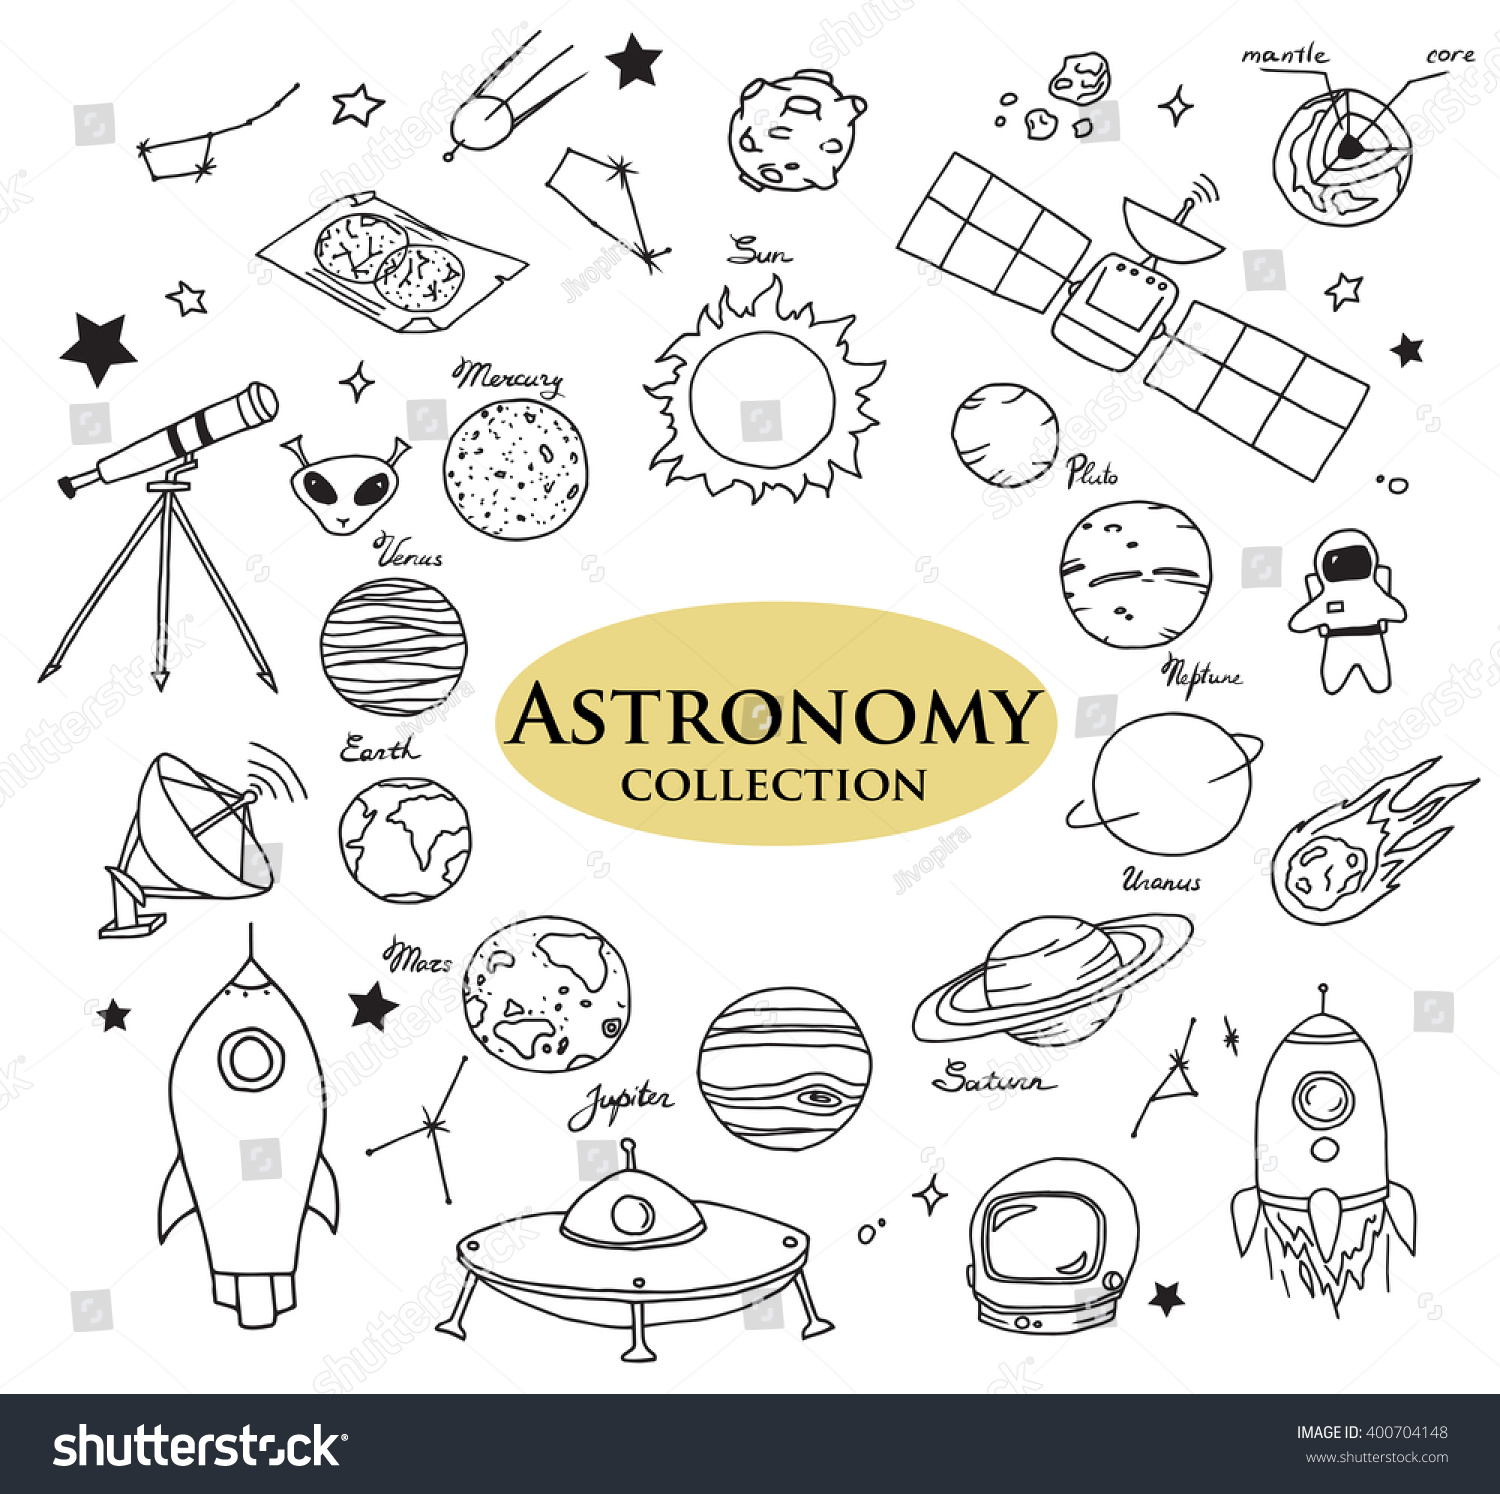 astronomy doodles - photo #5